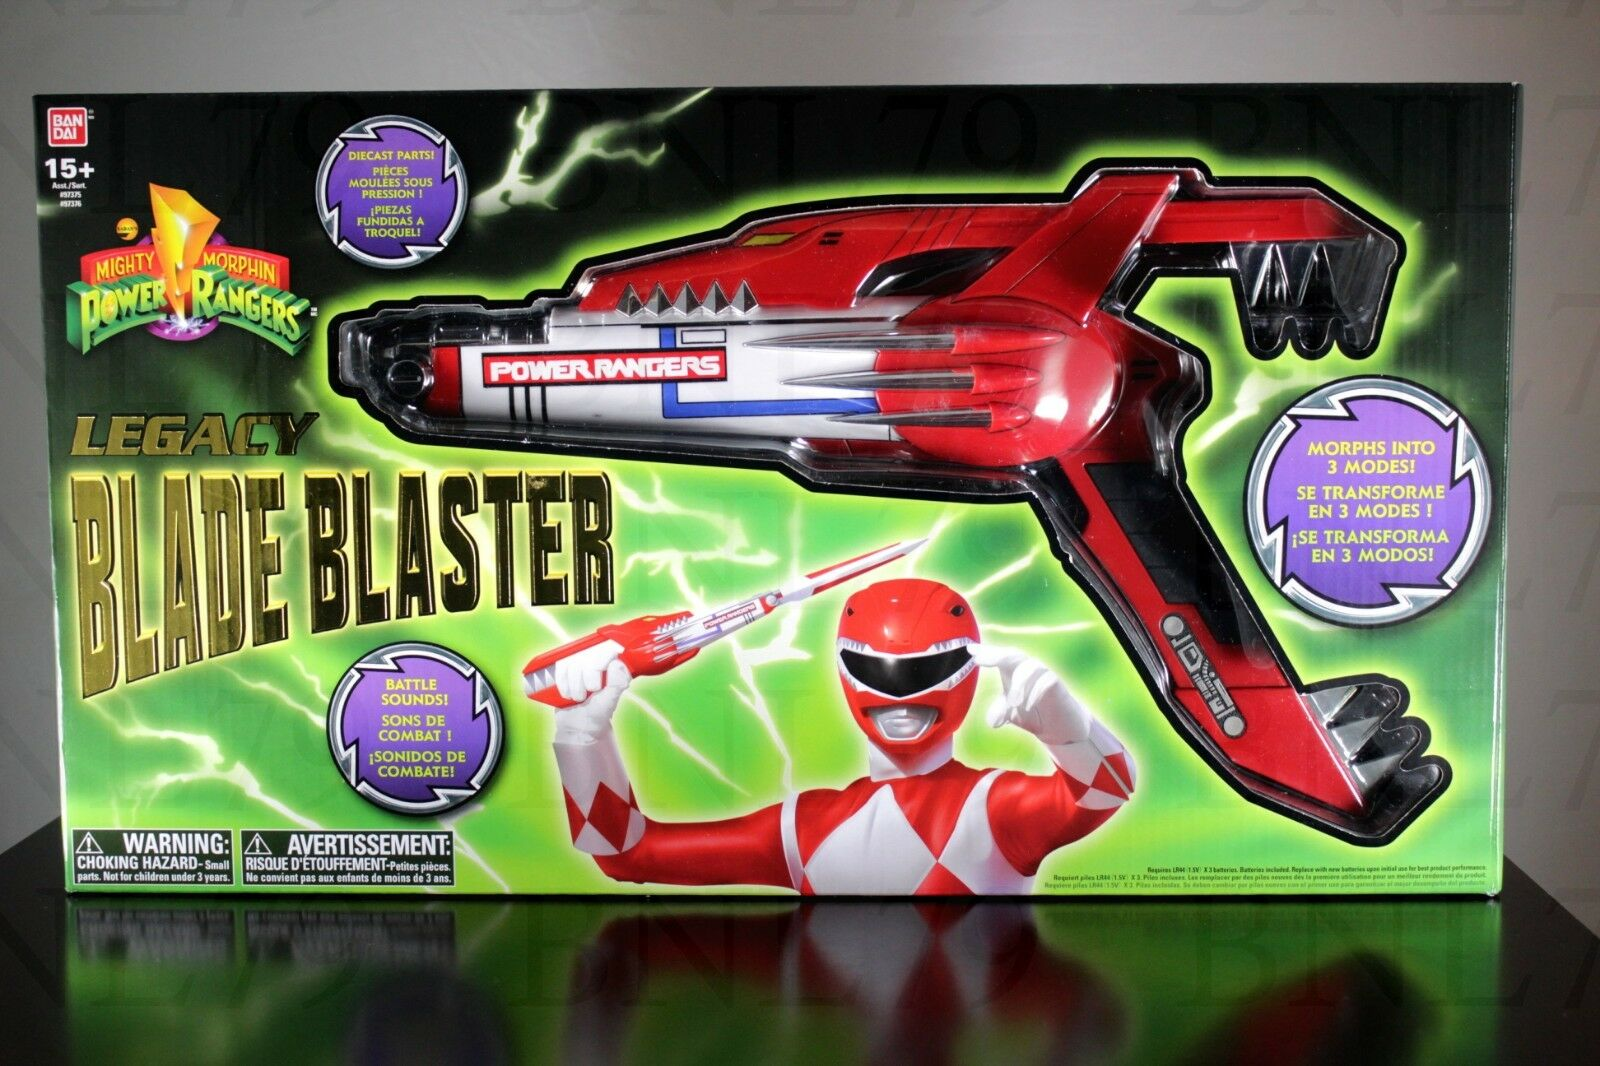 Blade Blaster Legacy Mighty Morphin Power Rangers Mighty Morphin Power Rangers Die Cast Étui Mode Nouveau